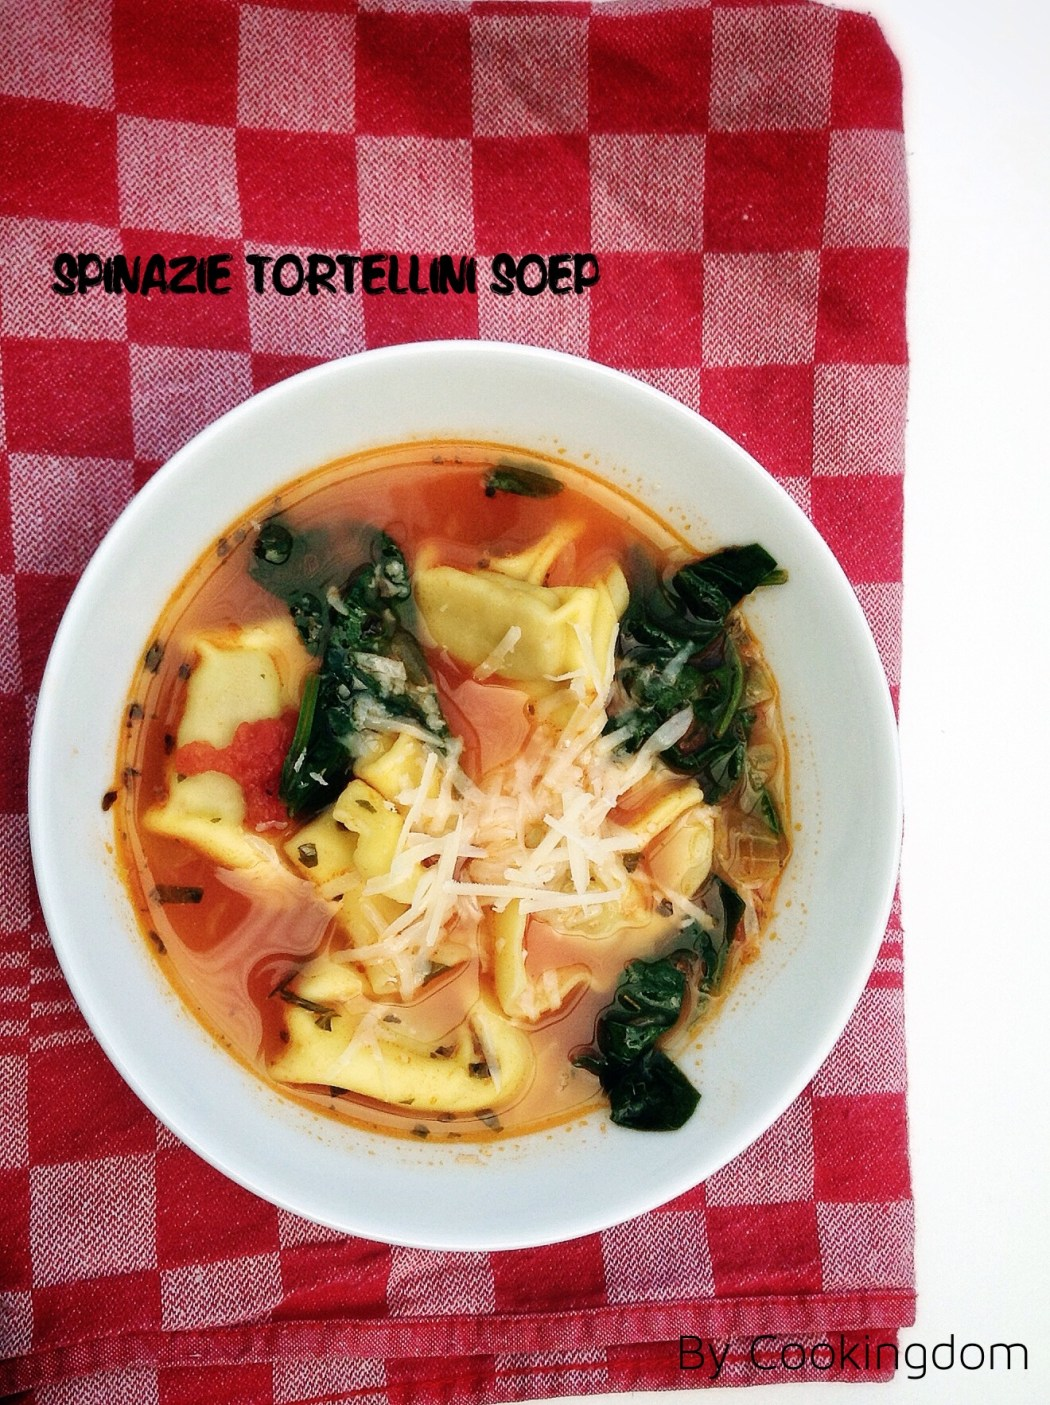 Spinazie tortellini soep, by Cookingdom